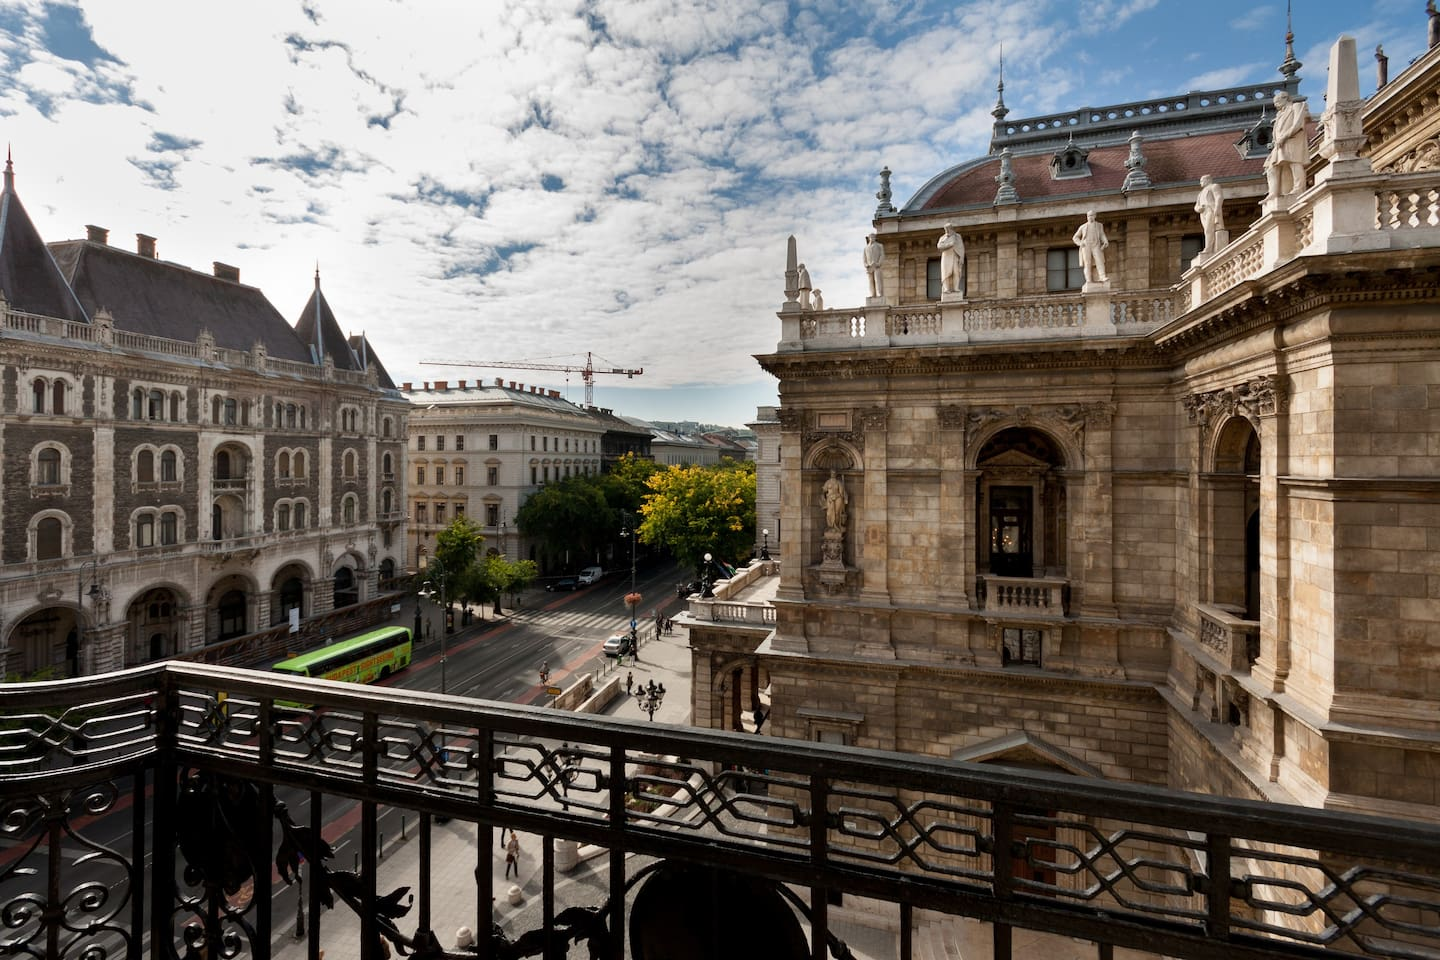 The Opera and the Ballet institute from the balconies (at the moment the facade of the Opera is covered for cleaning).